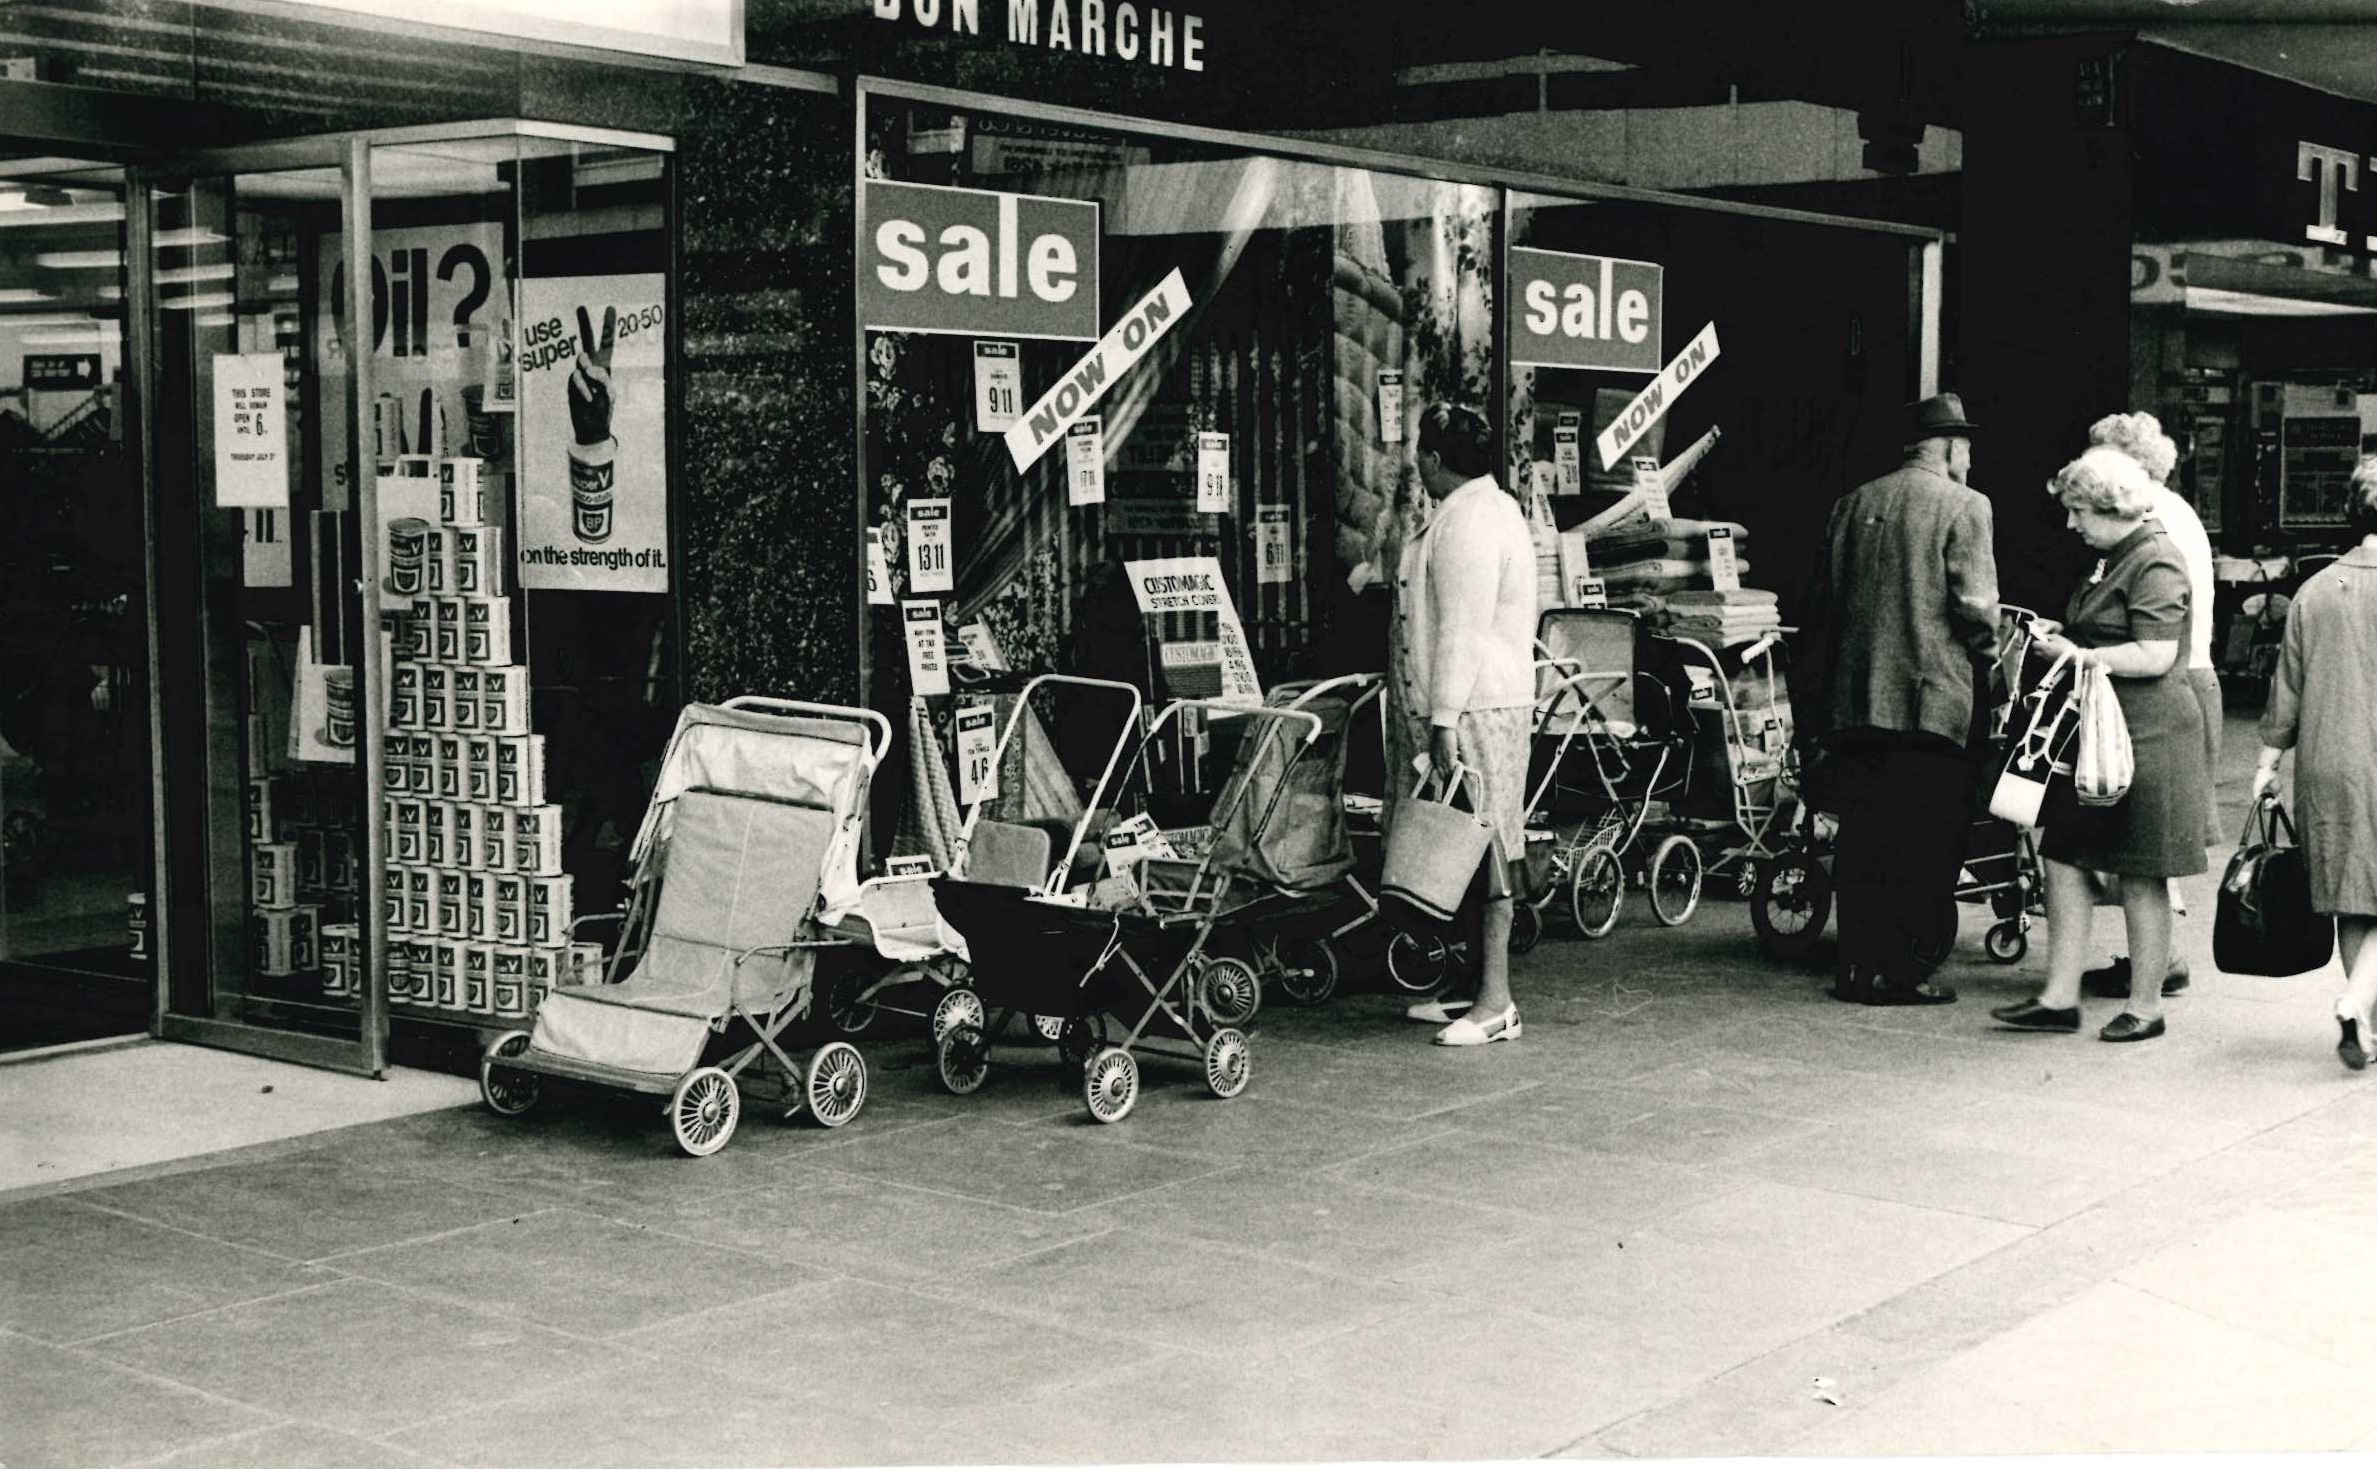 Swindon's shiny new department store more than 50 years ago